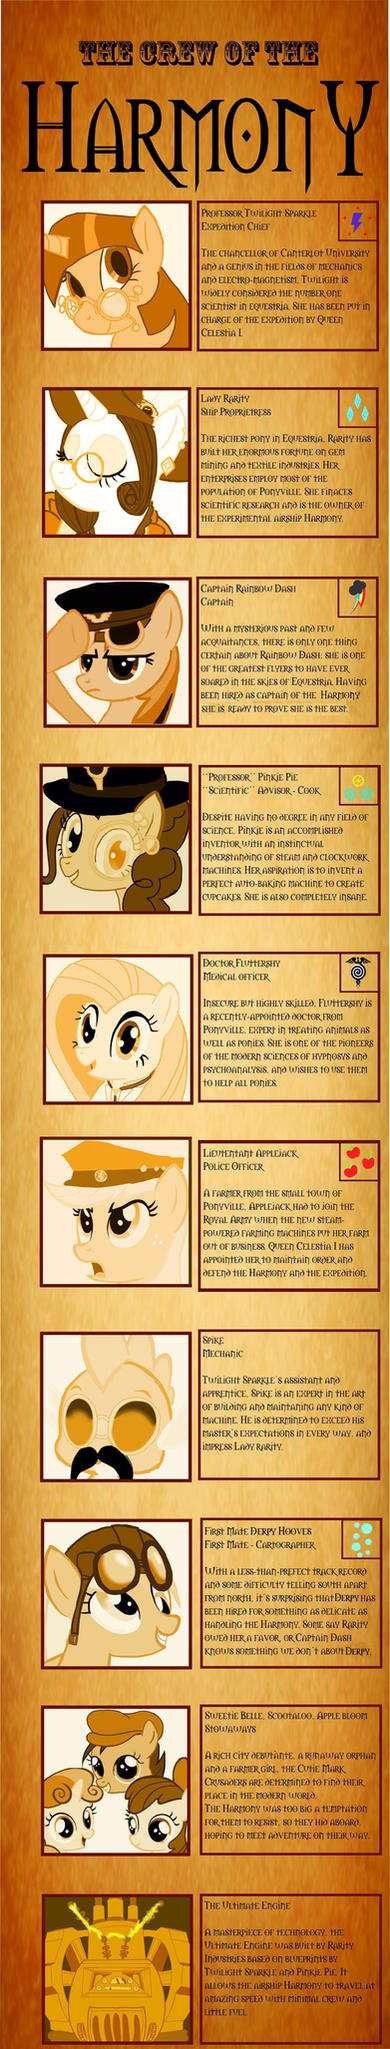 My Steampunk Pony: The Crew of the Harmony by SteamPoweredStallion